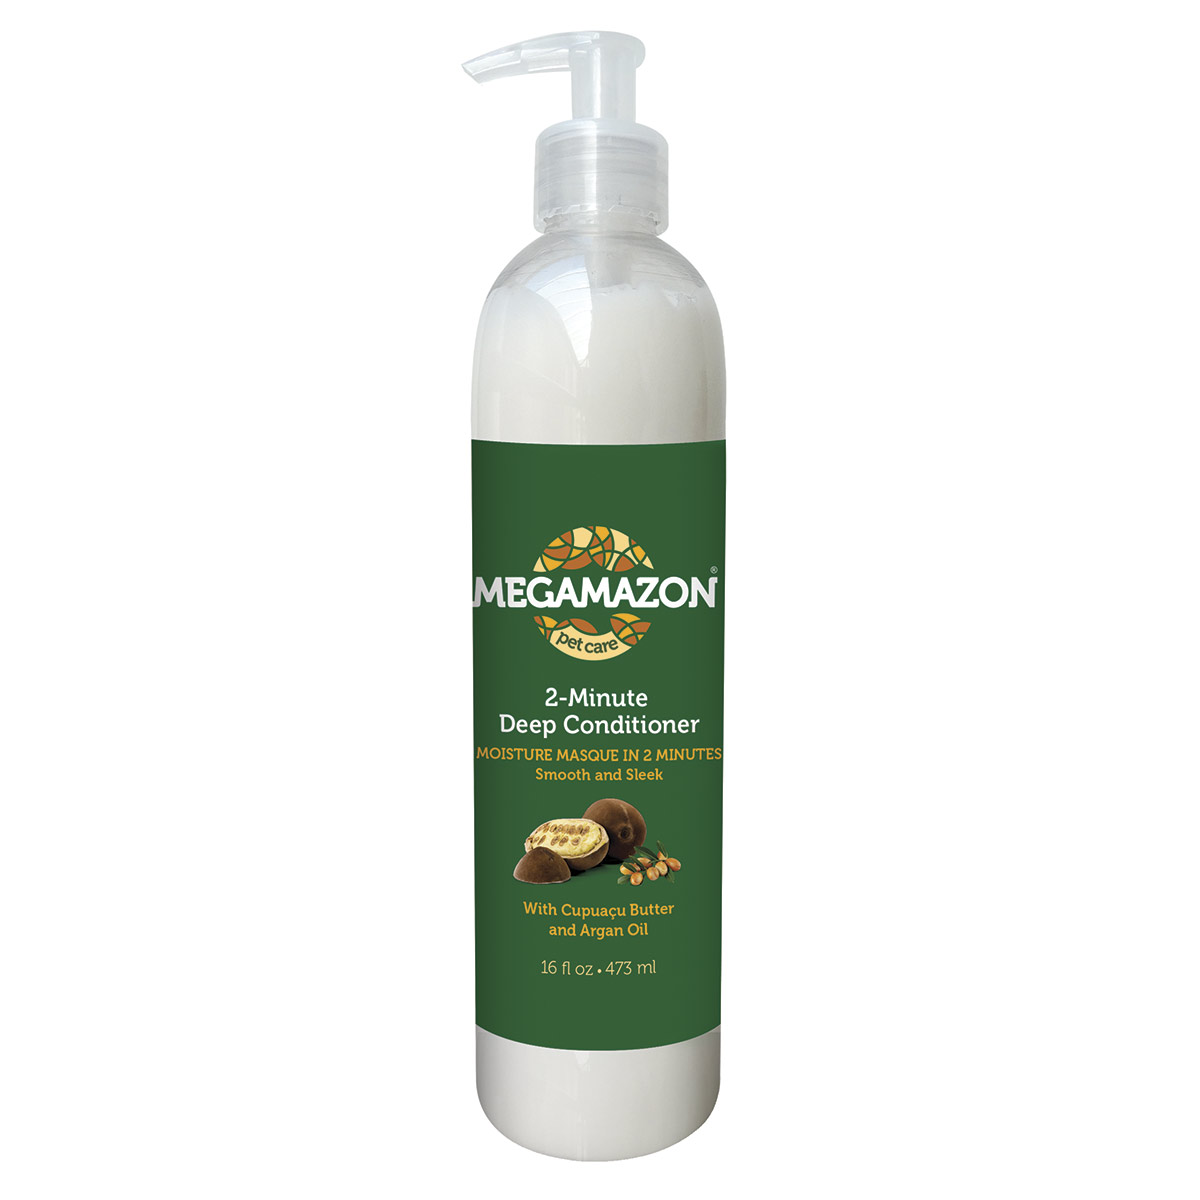 Buy Megamazon 2 Minute Deep Conditioner 16 oz for Dogs